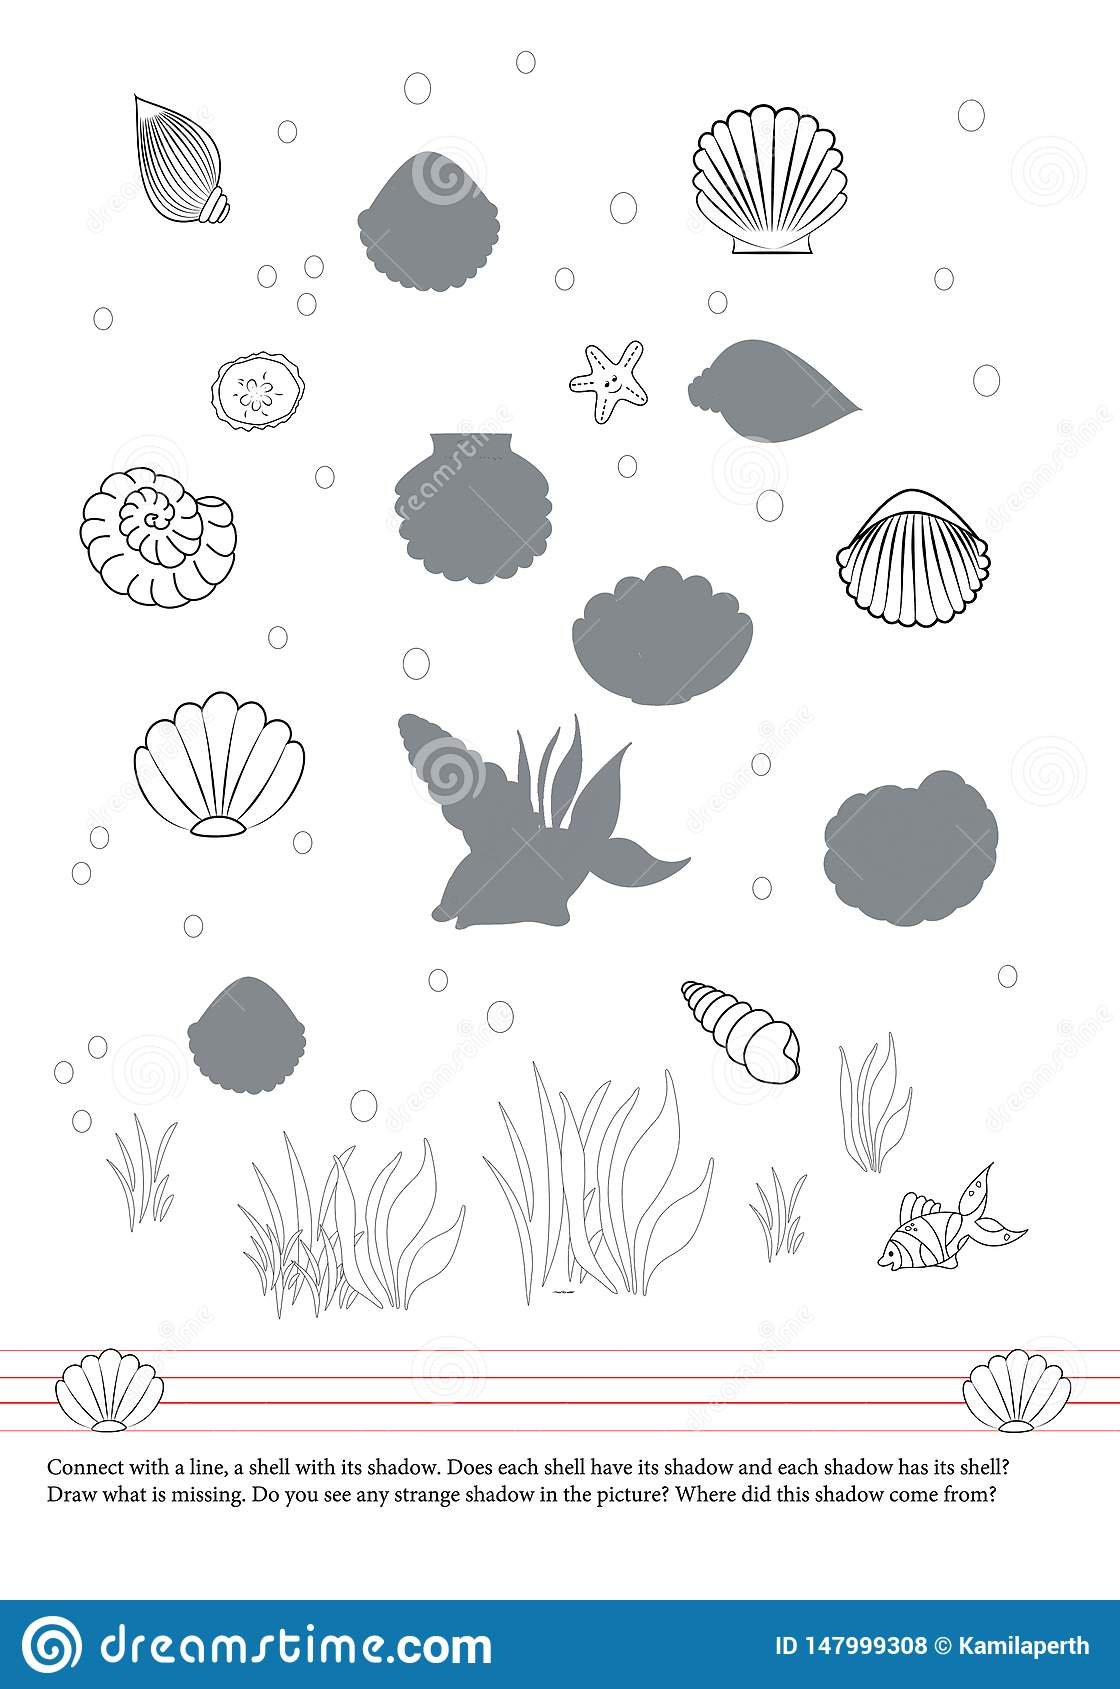 Activities book for children. Shells. Fish. Shadows. Drawing